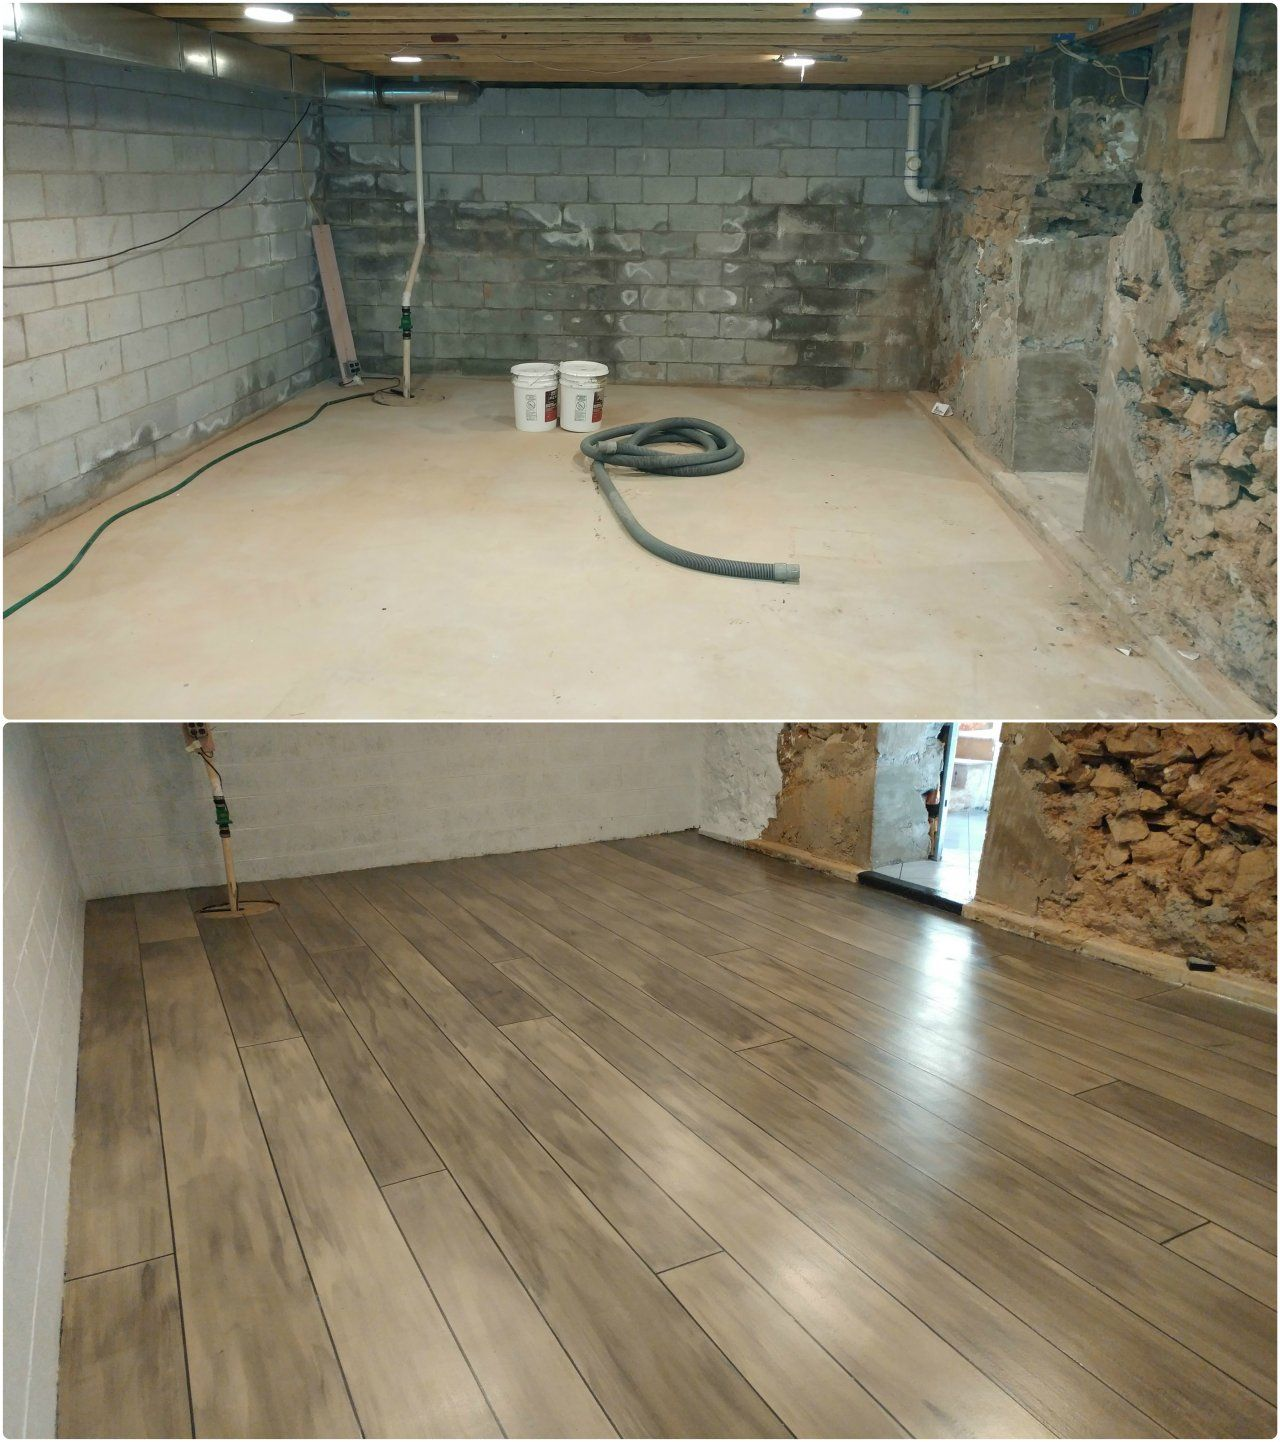 Basement refinished with concrete wood ardmore pa for Concrete floor covering ideas